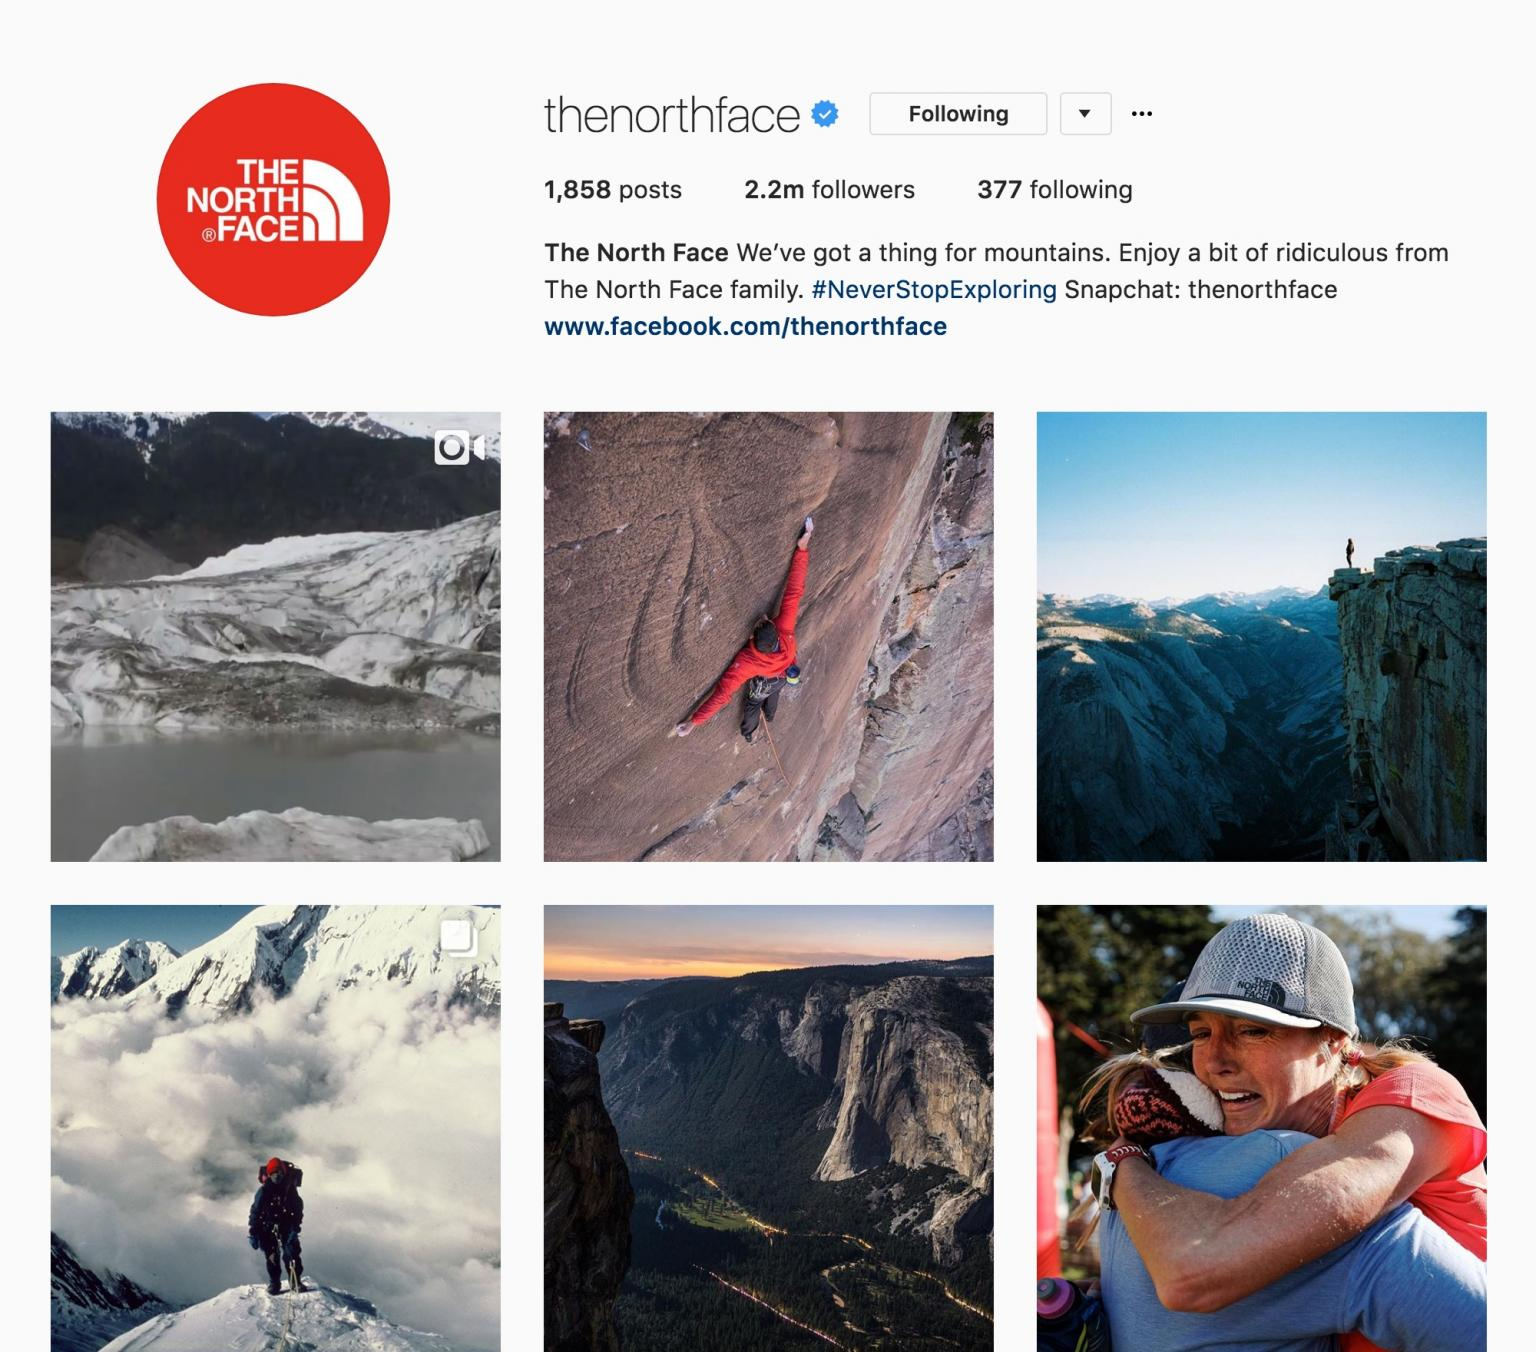 The North Face Instagram Feed